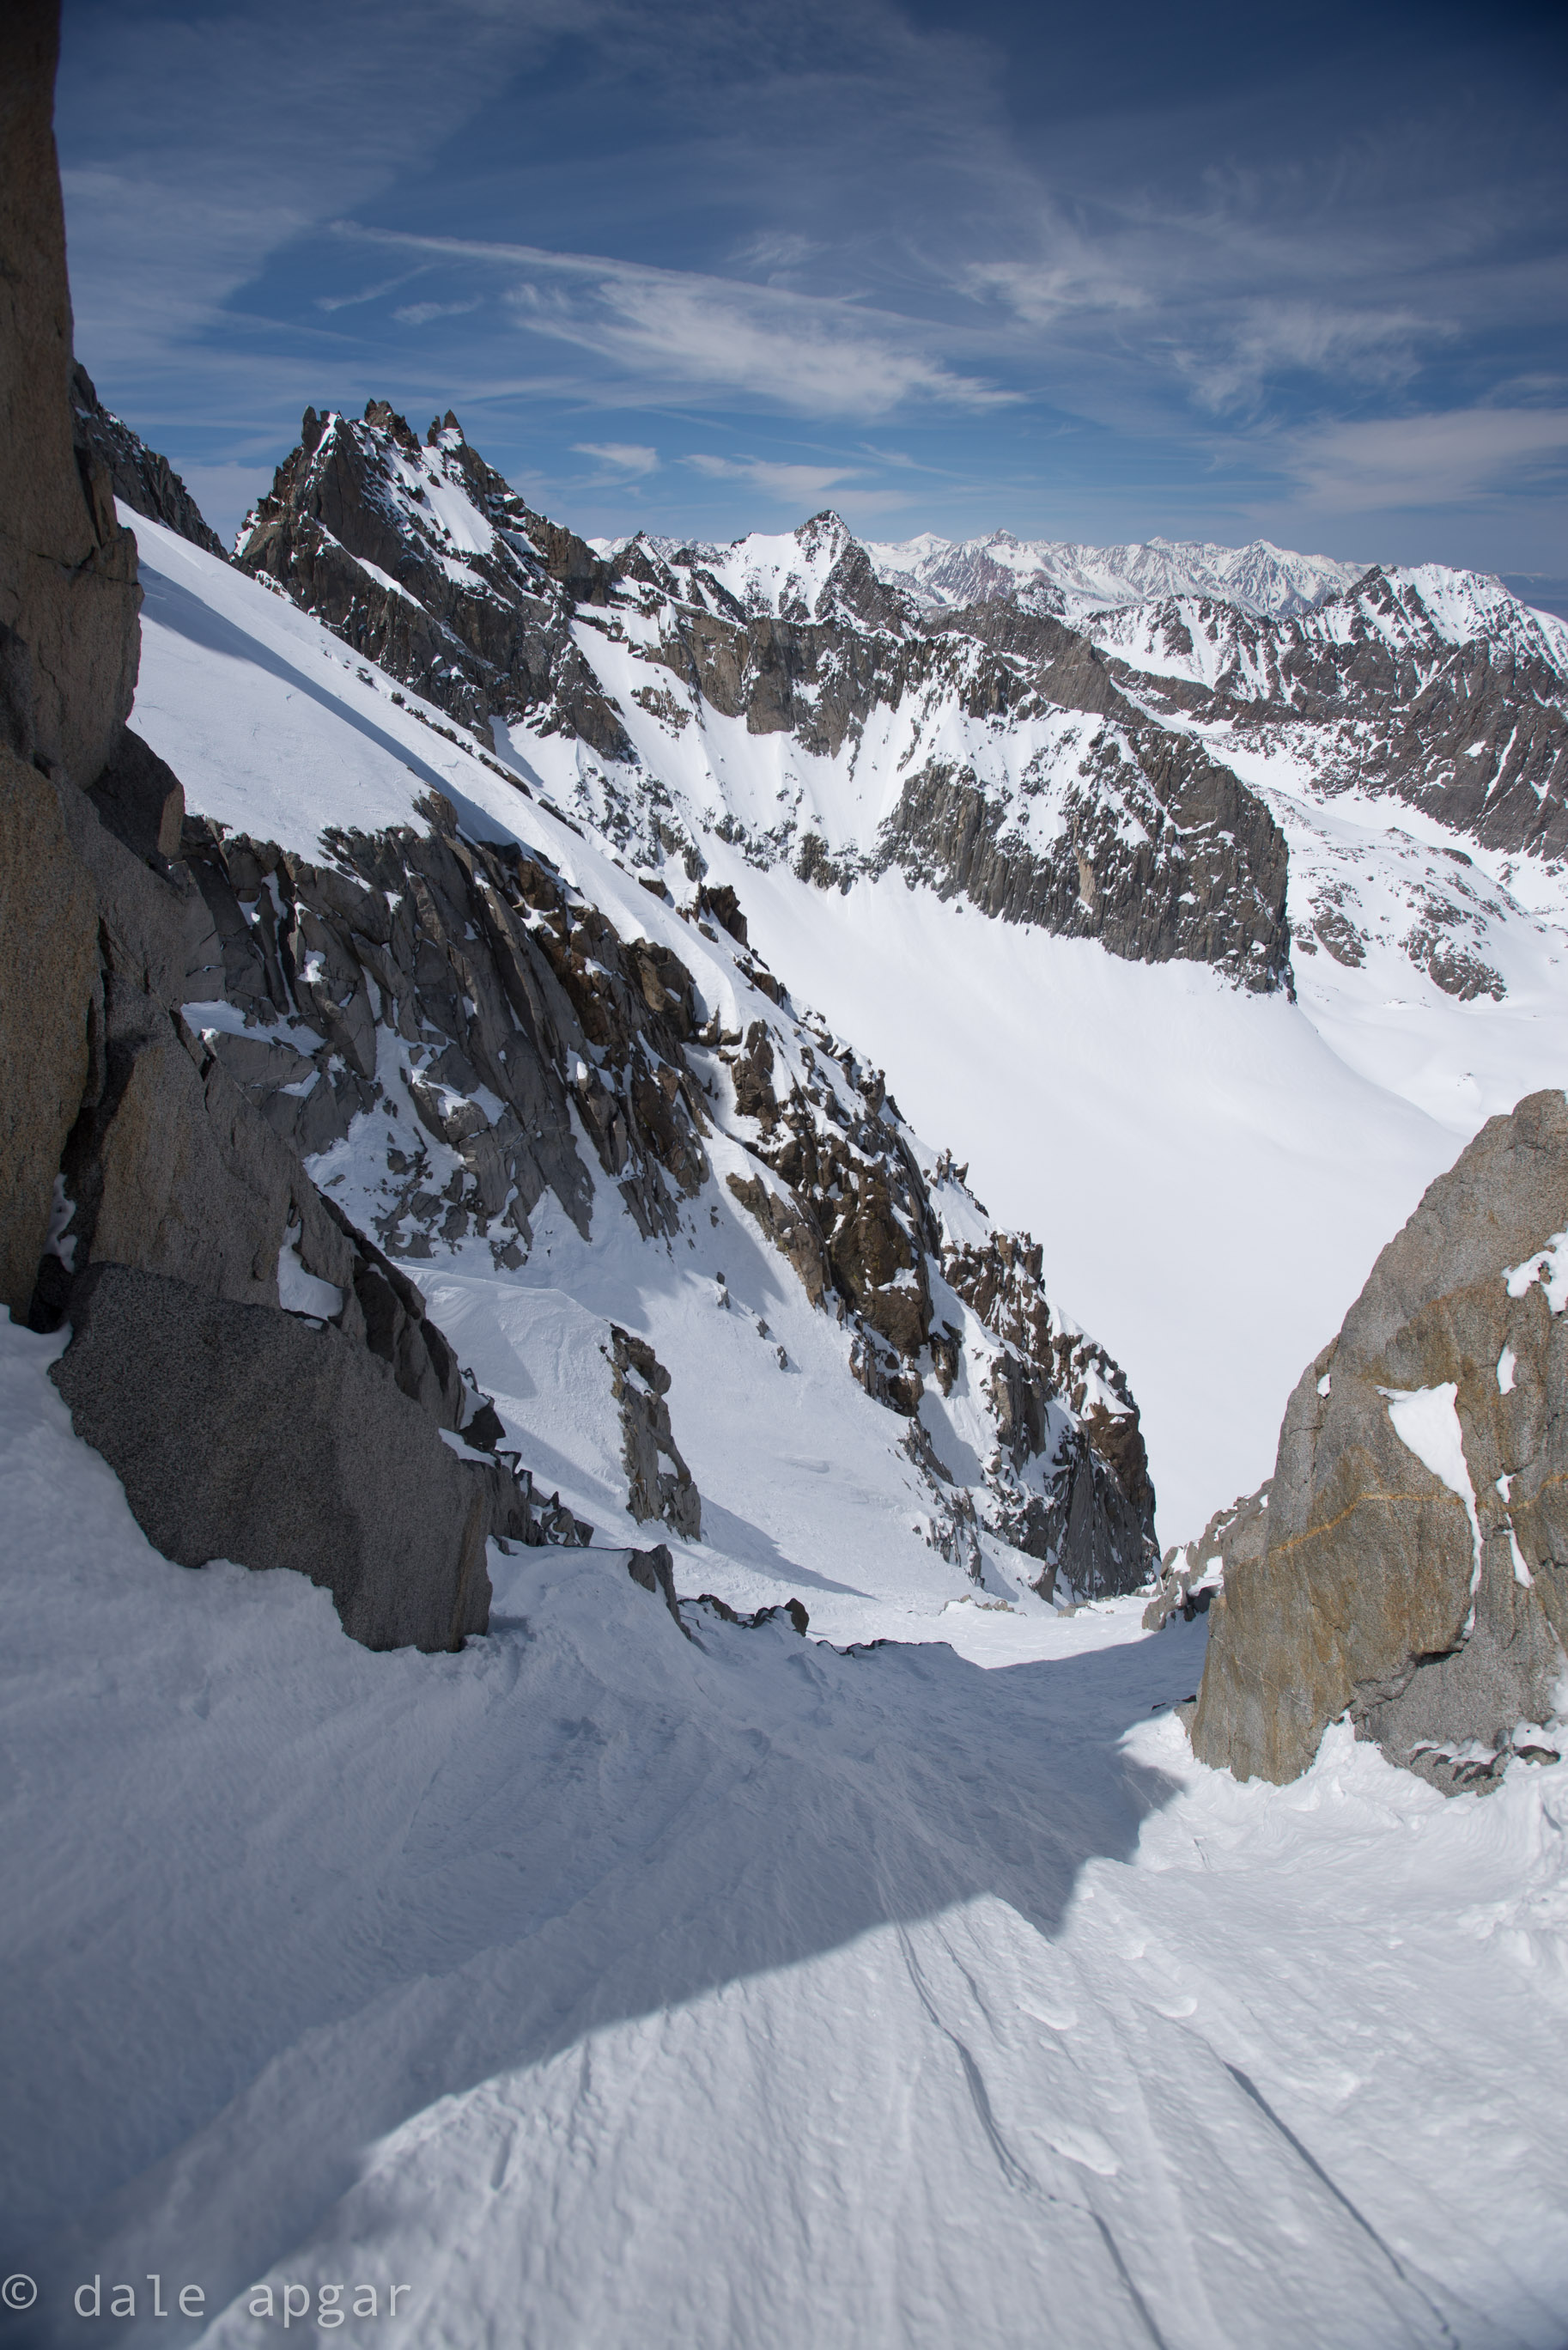 Staring down the V-notch couloir, I don't think I'll be up there again…and watch out for that Bergschrund  at the bottom.